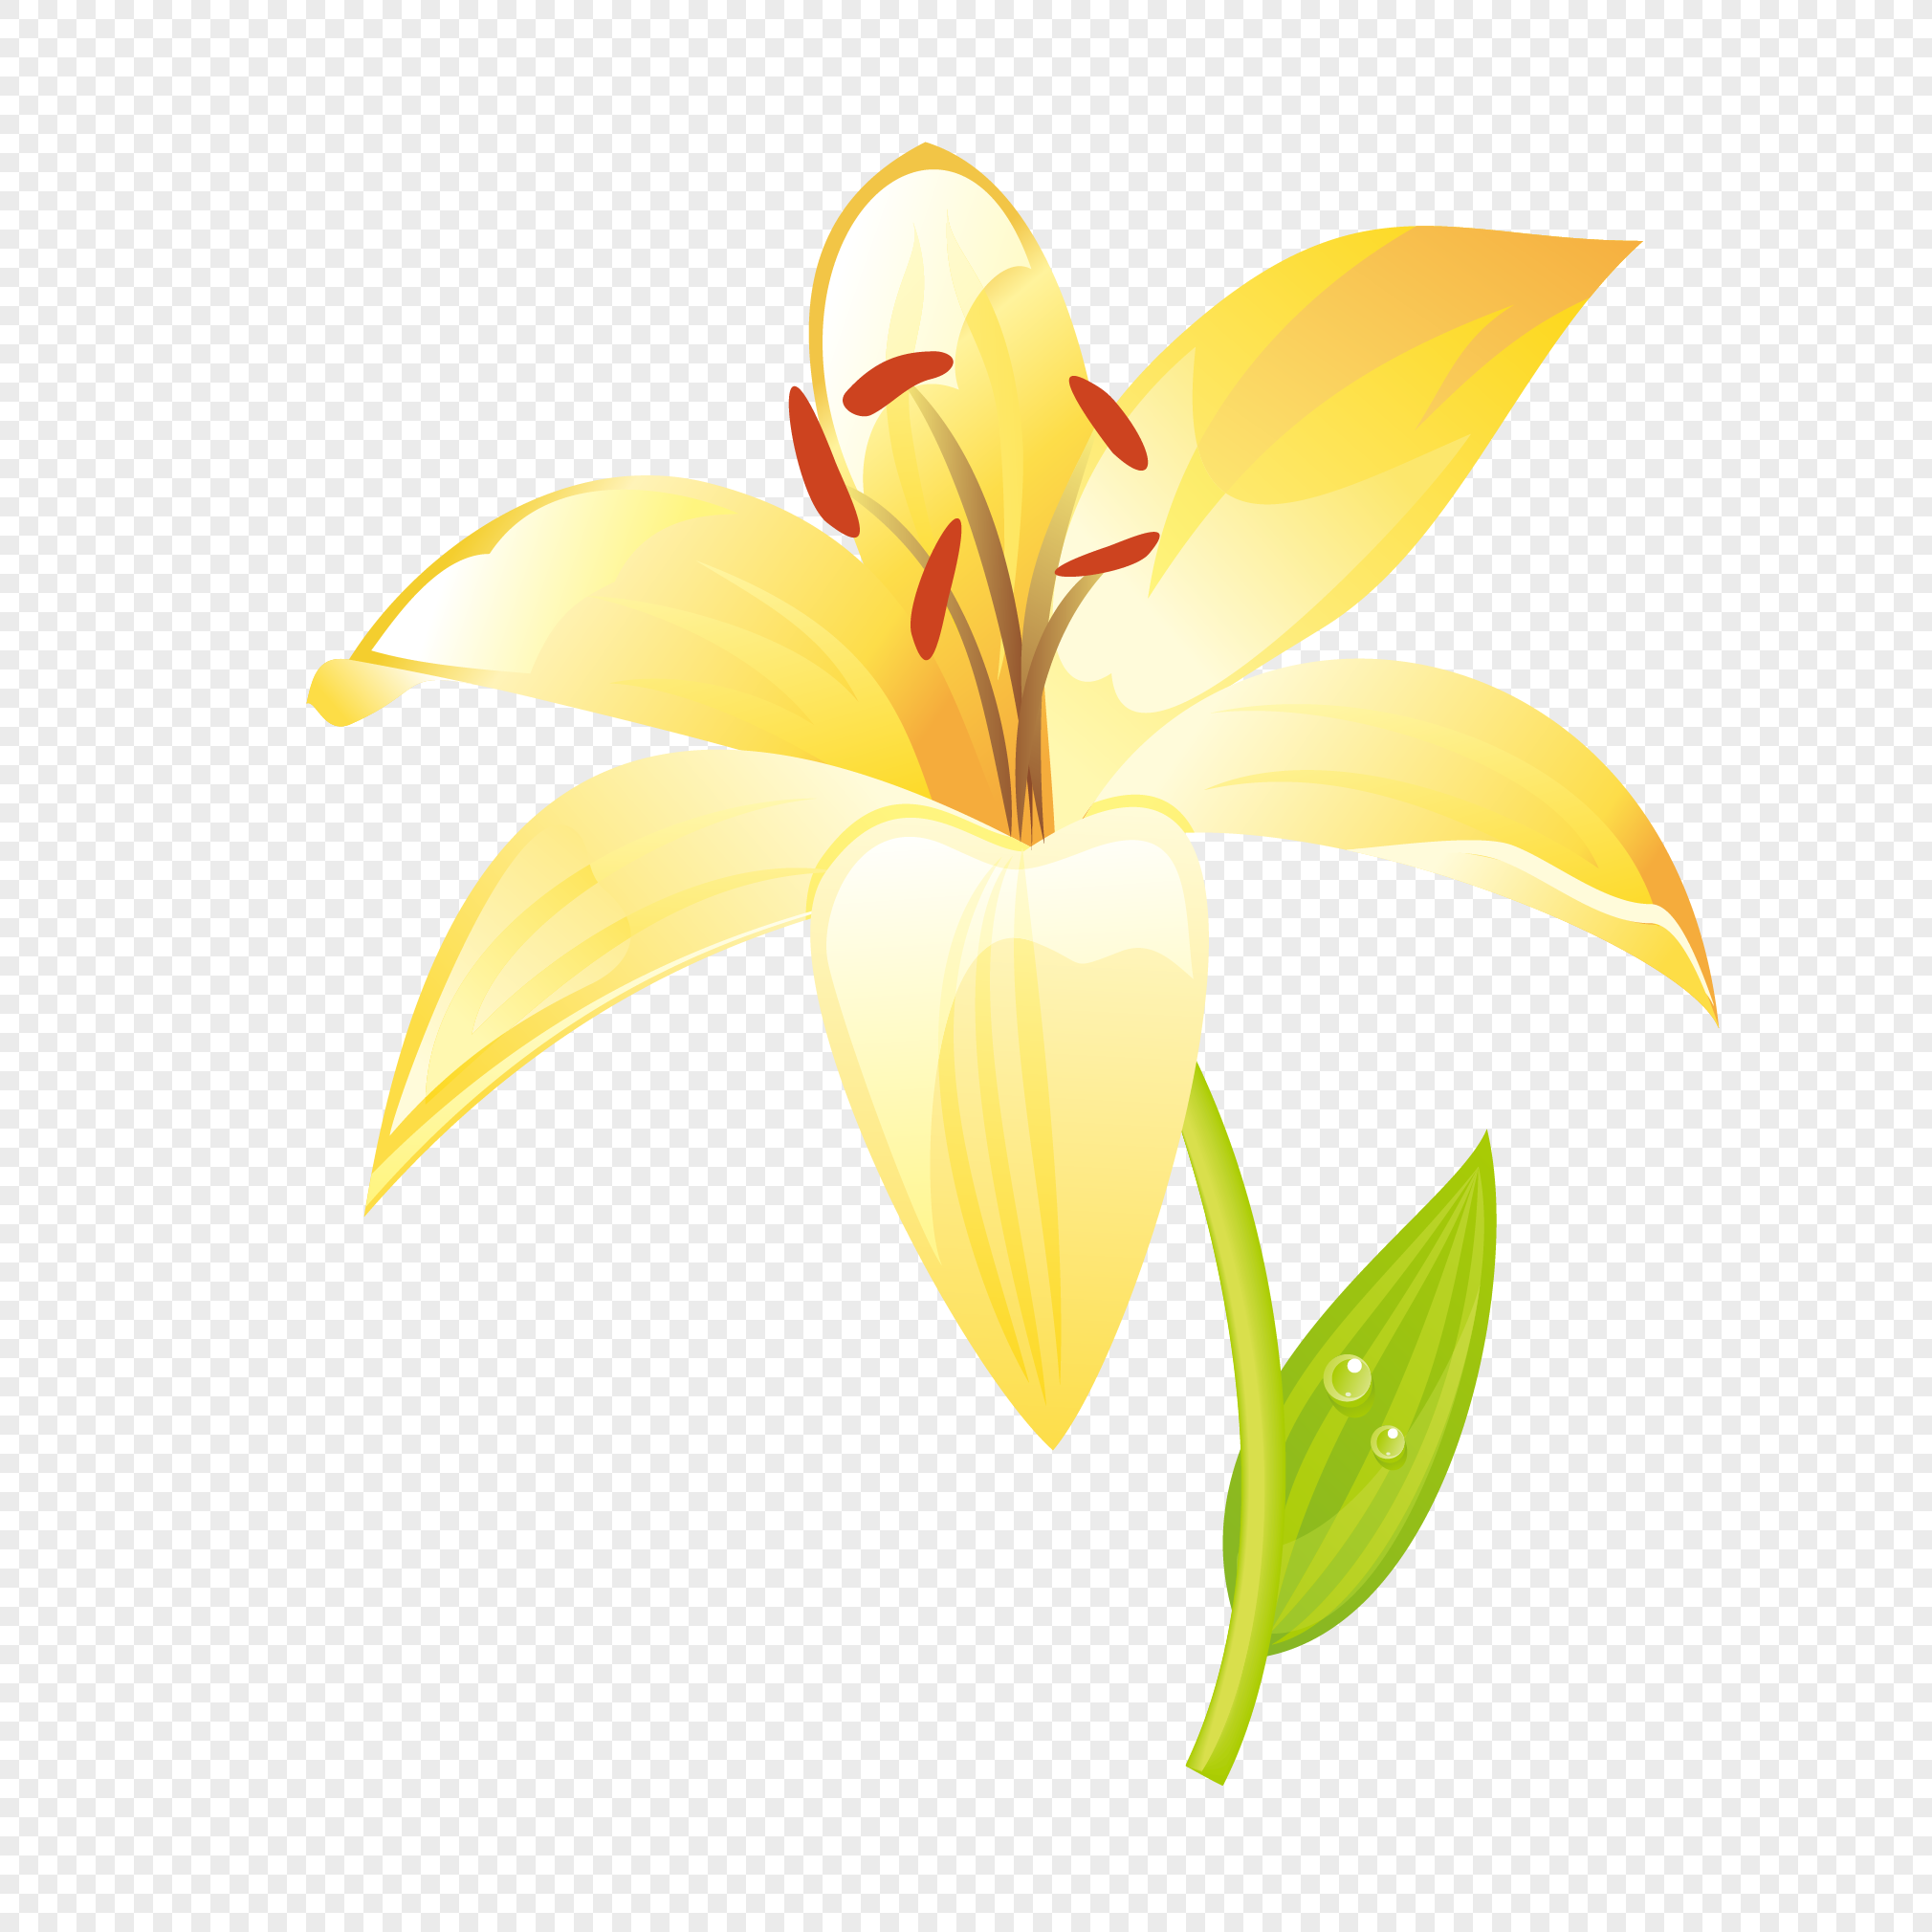 yellow flowers png image picture free download 400782261